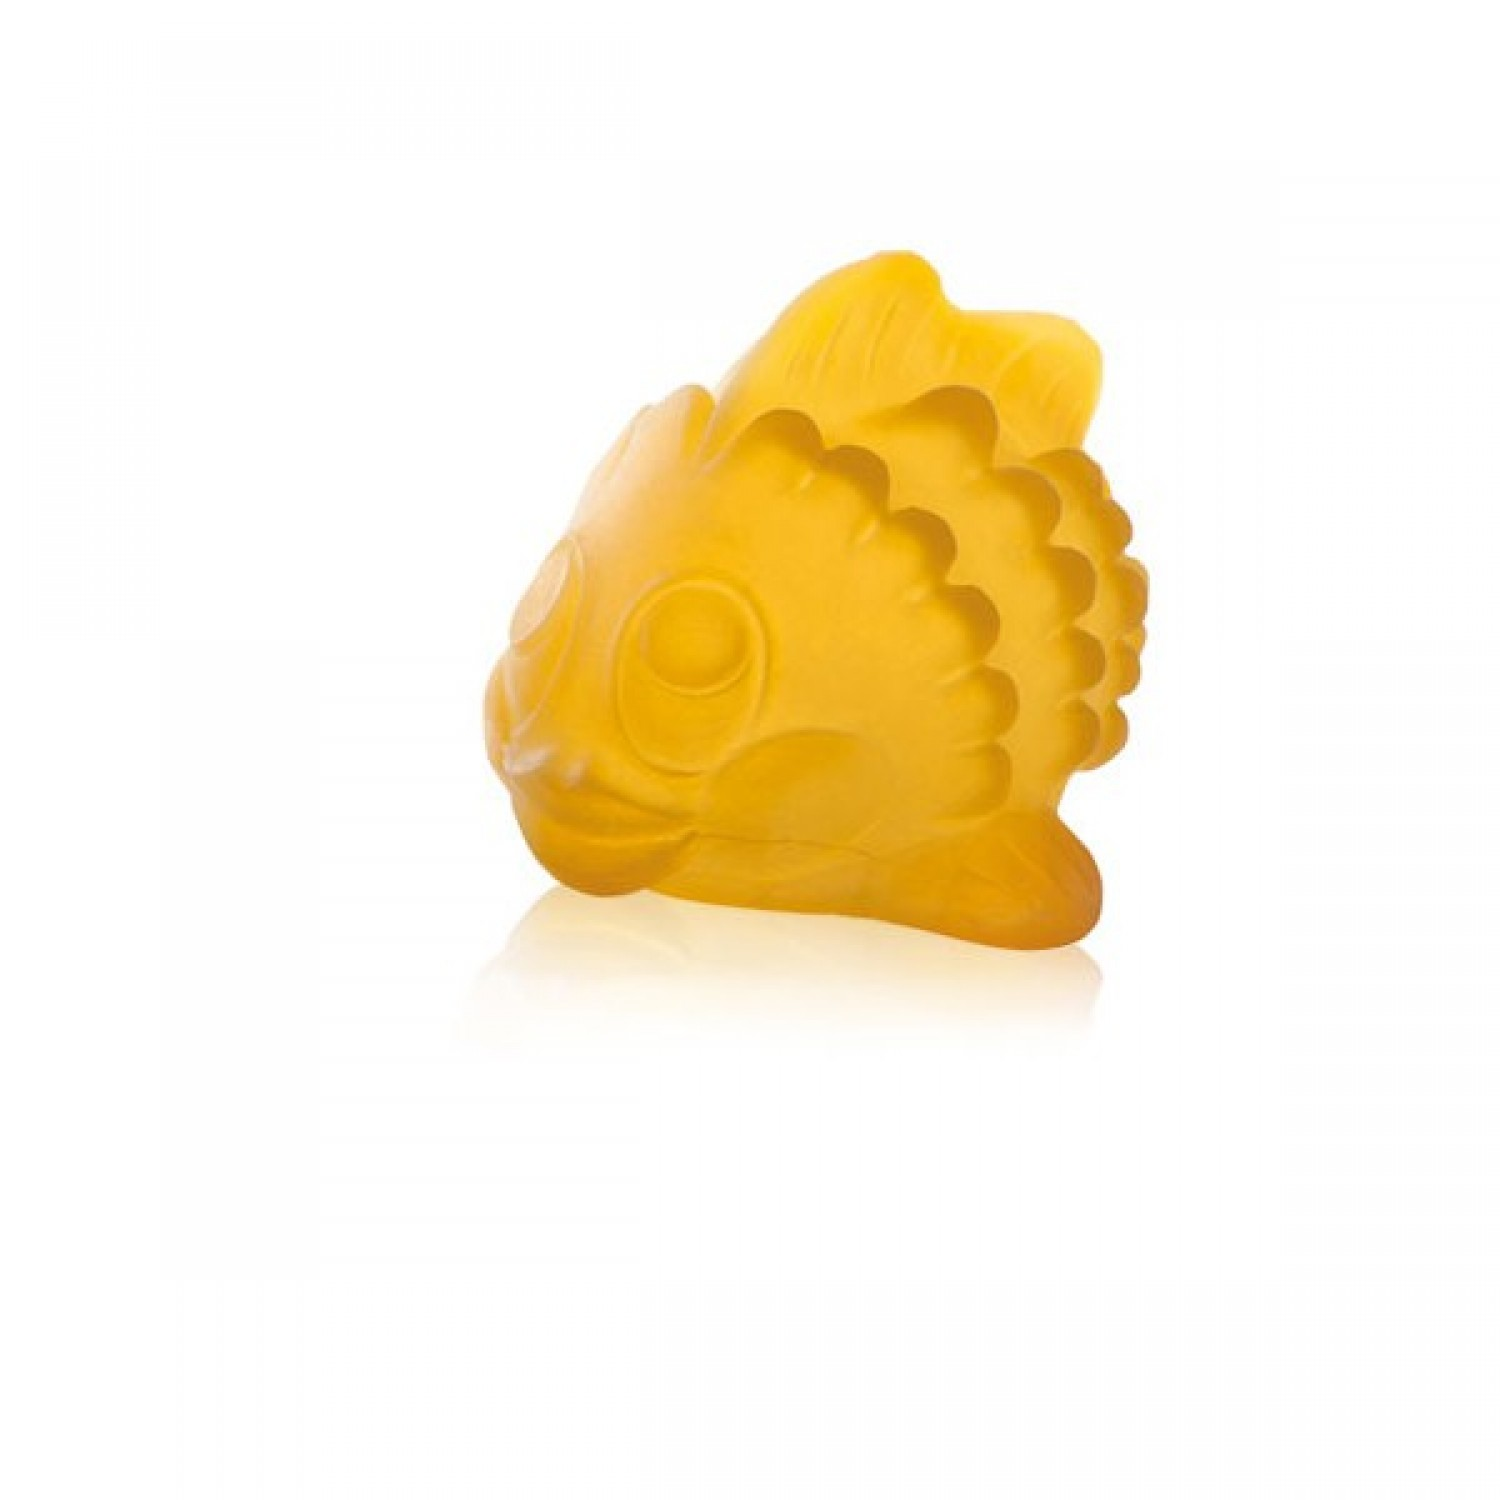 Hevea bathing toy Polly the fish made of natural rubber